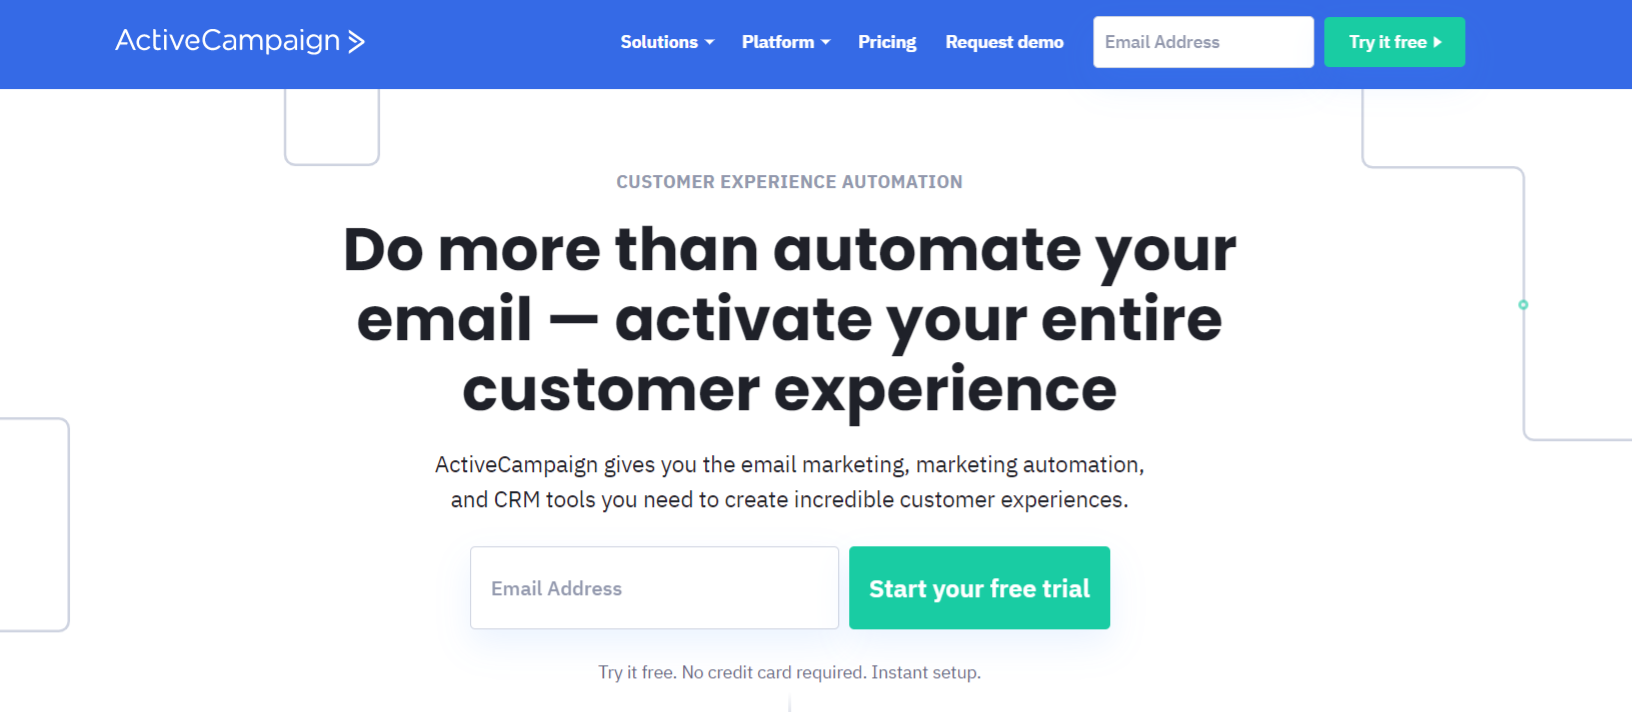 Active campaign: Email marketing automation tool